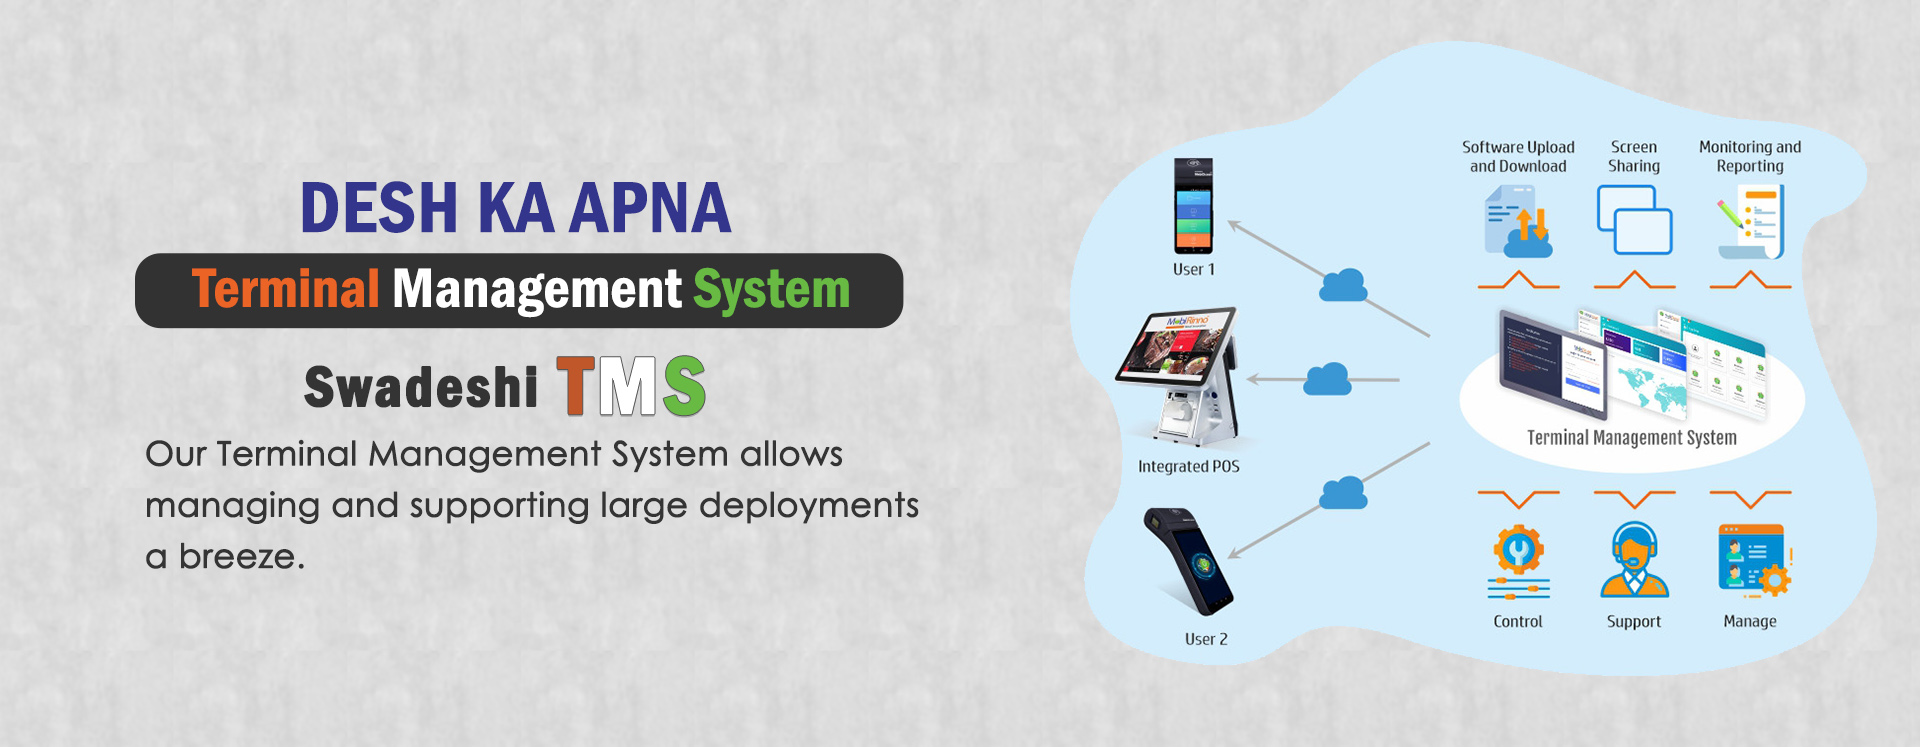 Control | Manage| Support - Terminal Management System